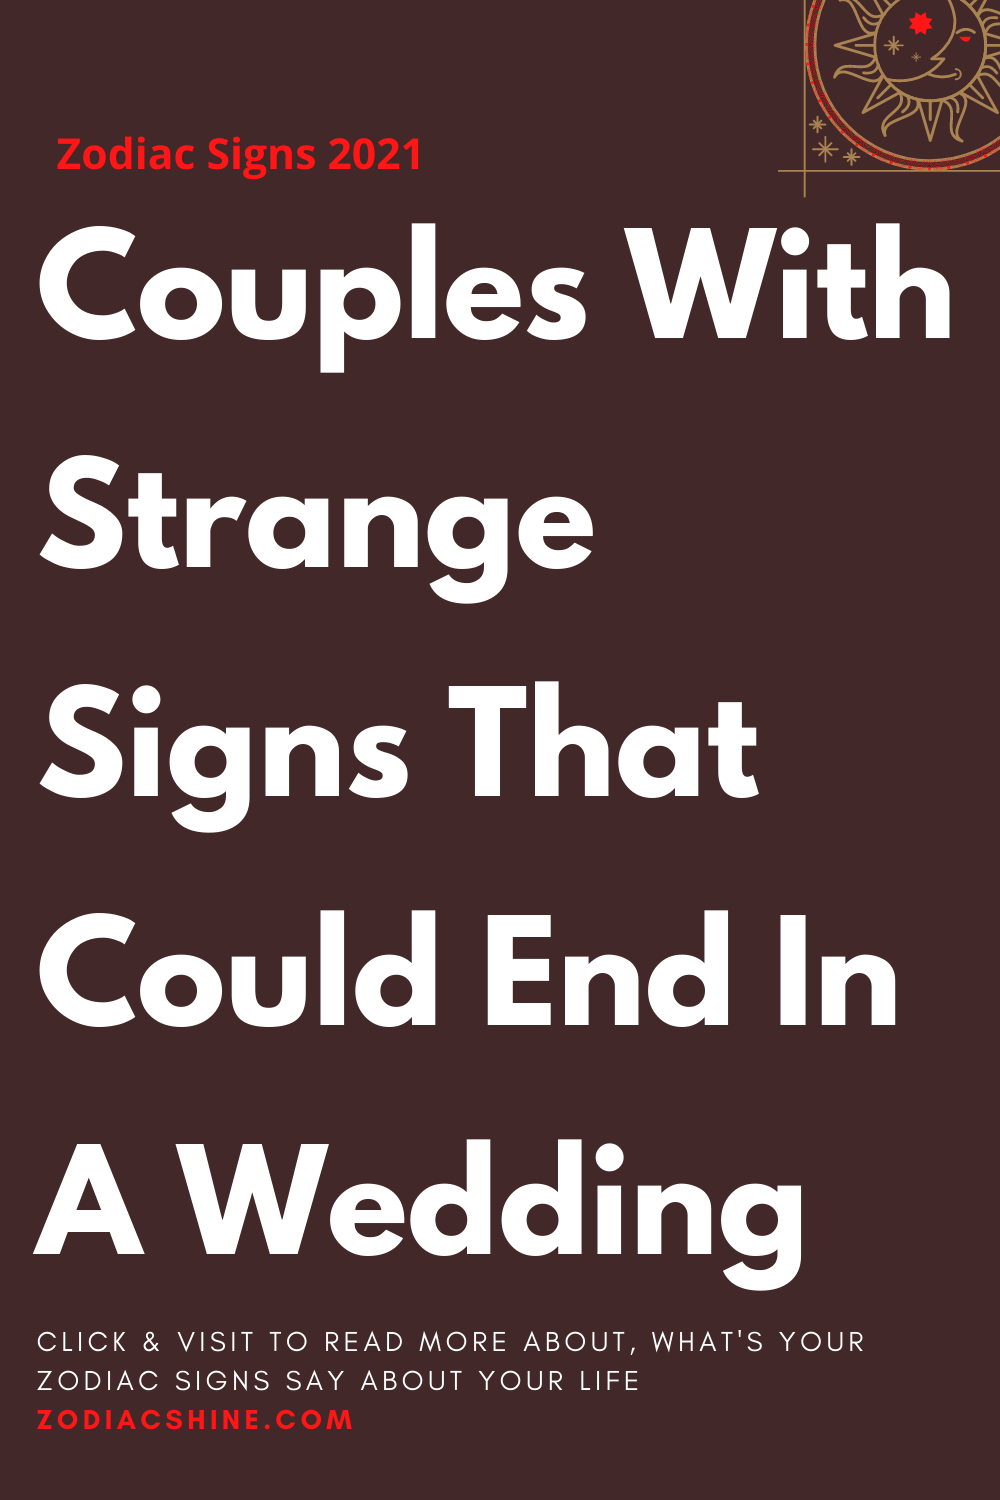 Couples With Strange Signs That Could End In A Wedding